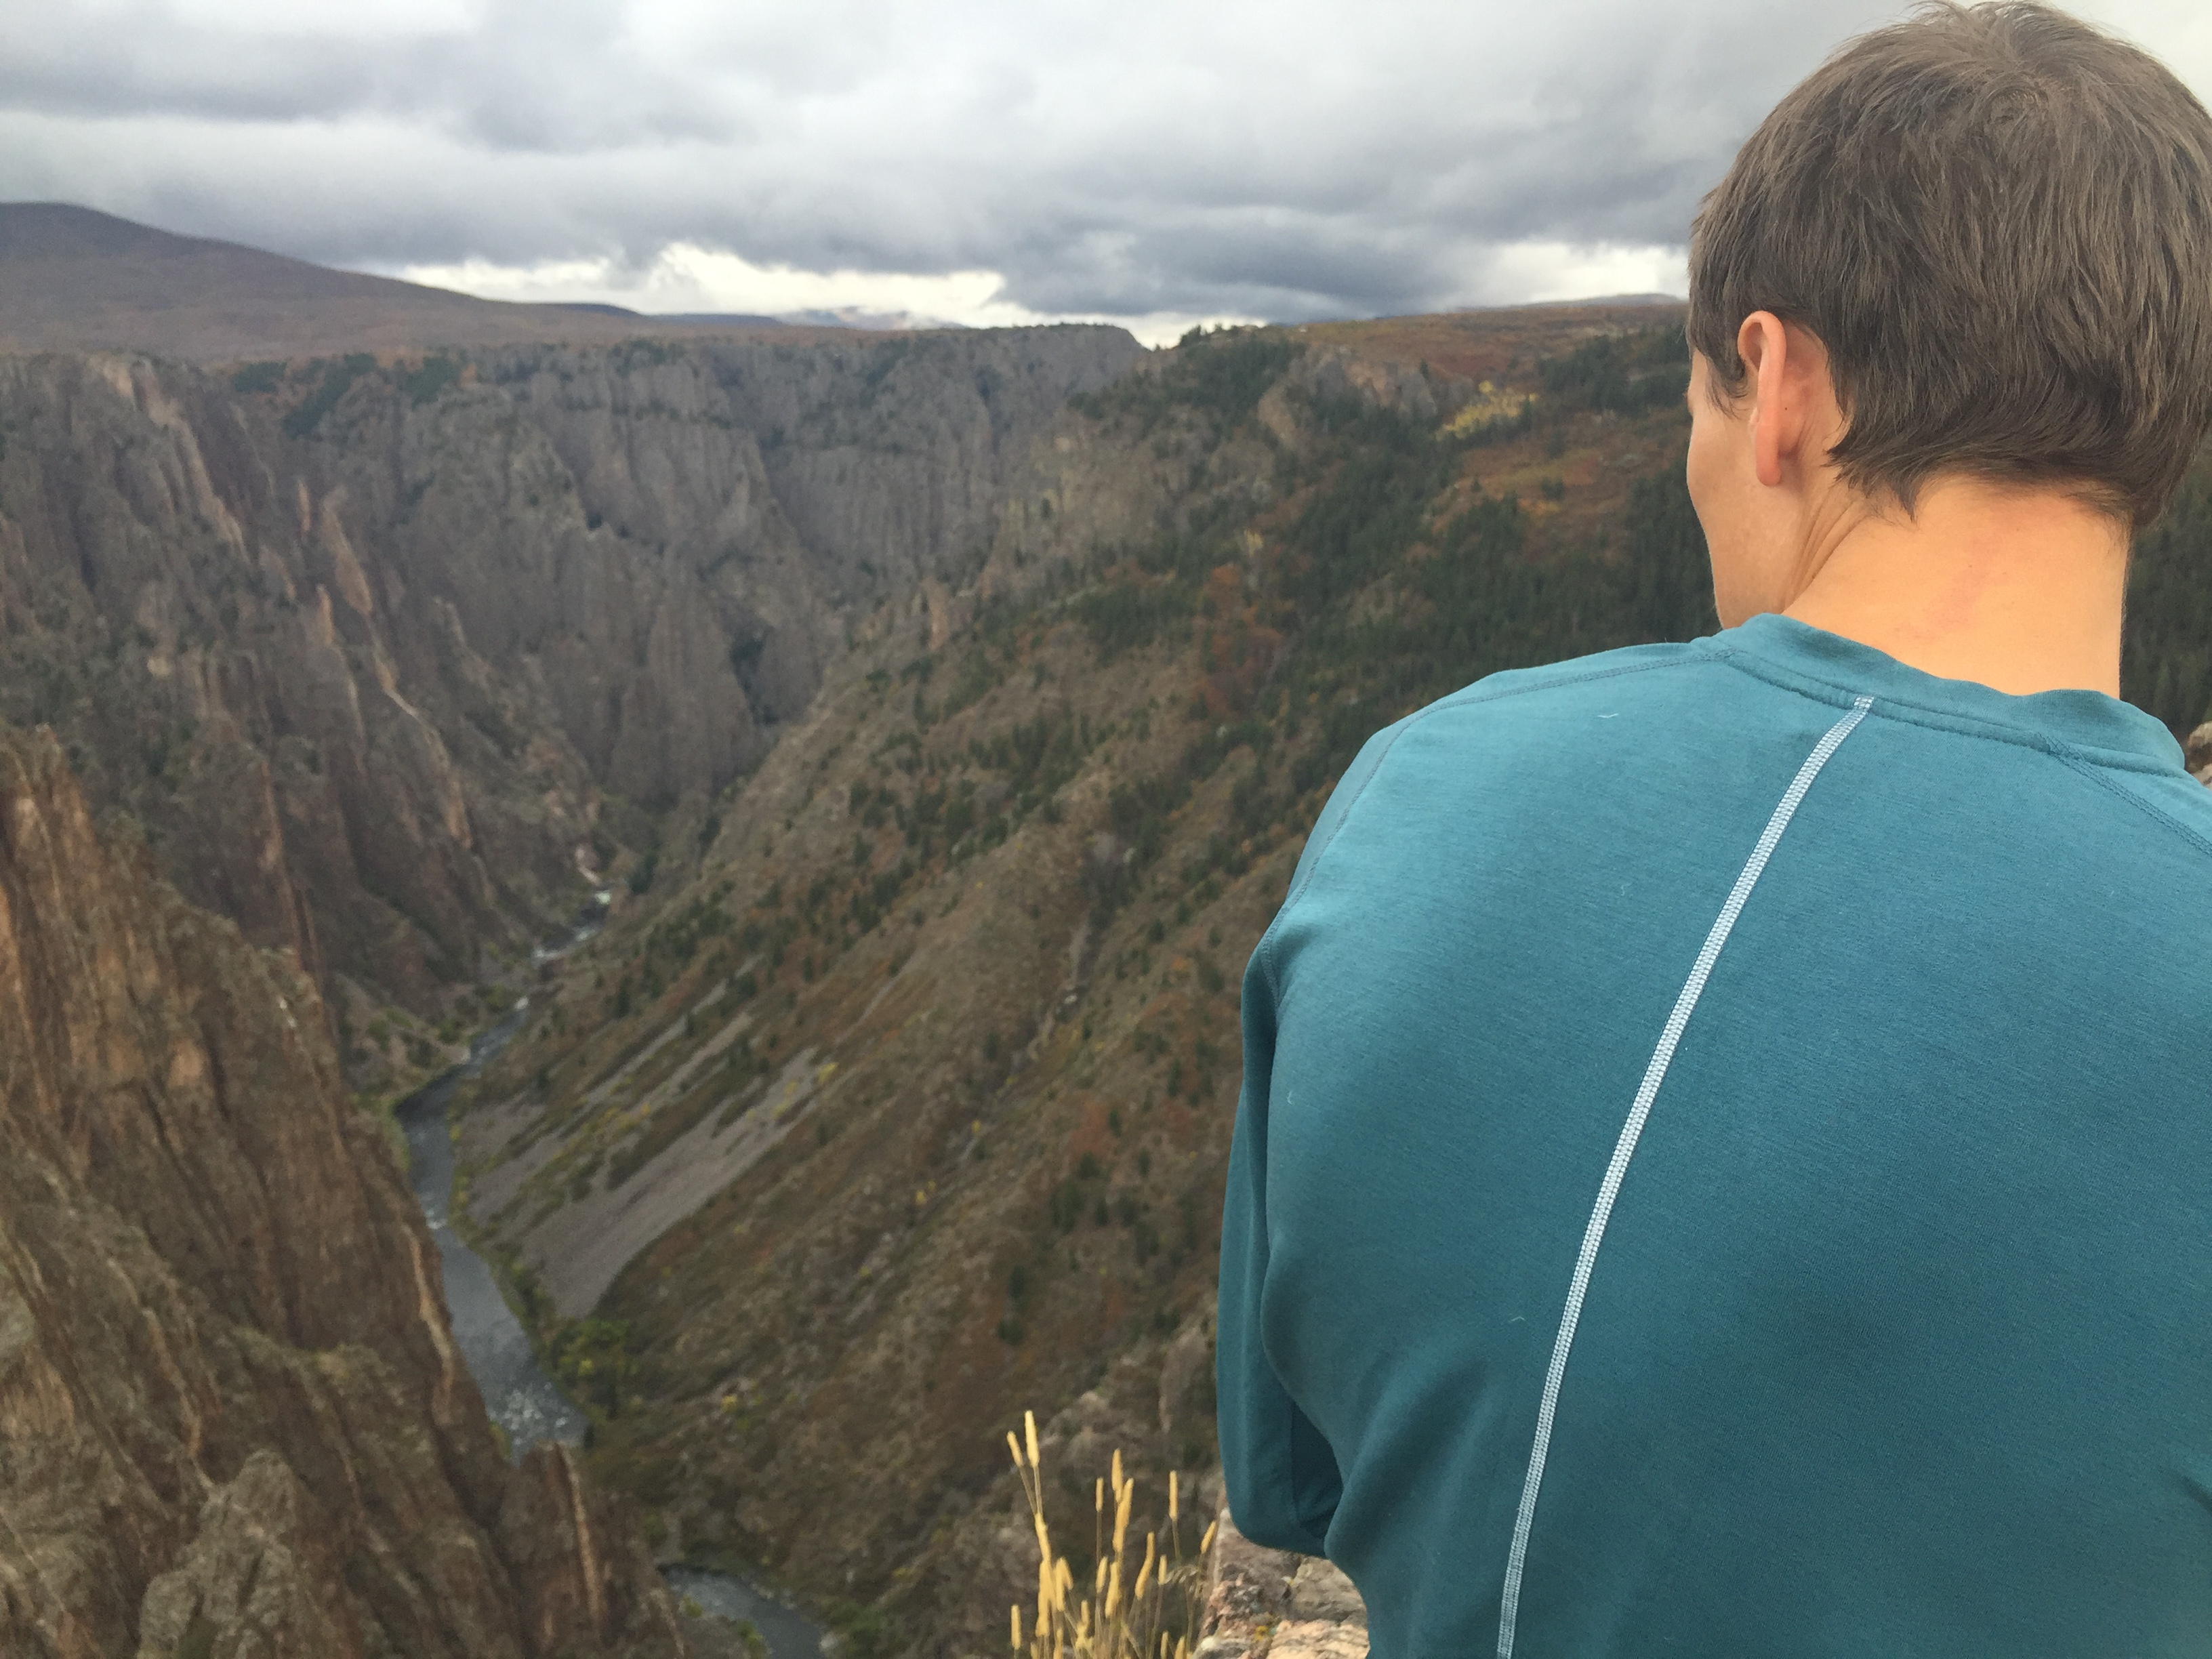 VIDEO: Black Canyon of the Gunnison National Park